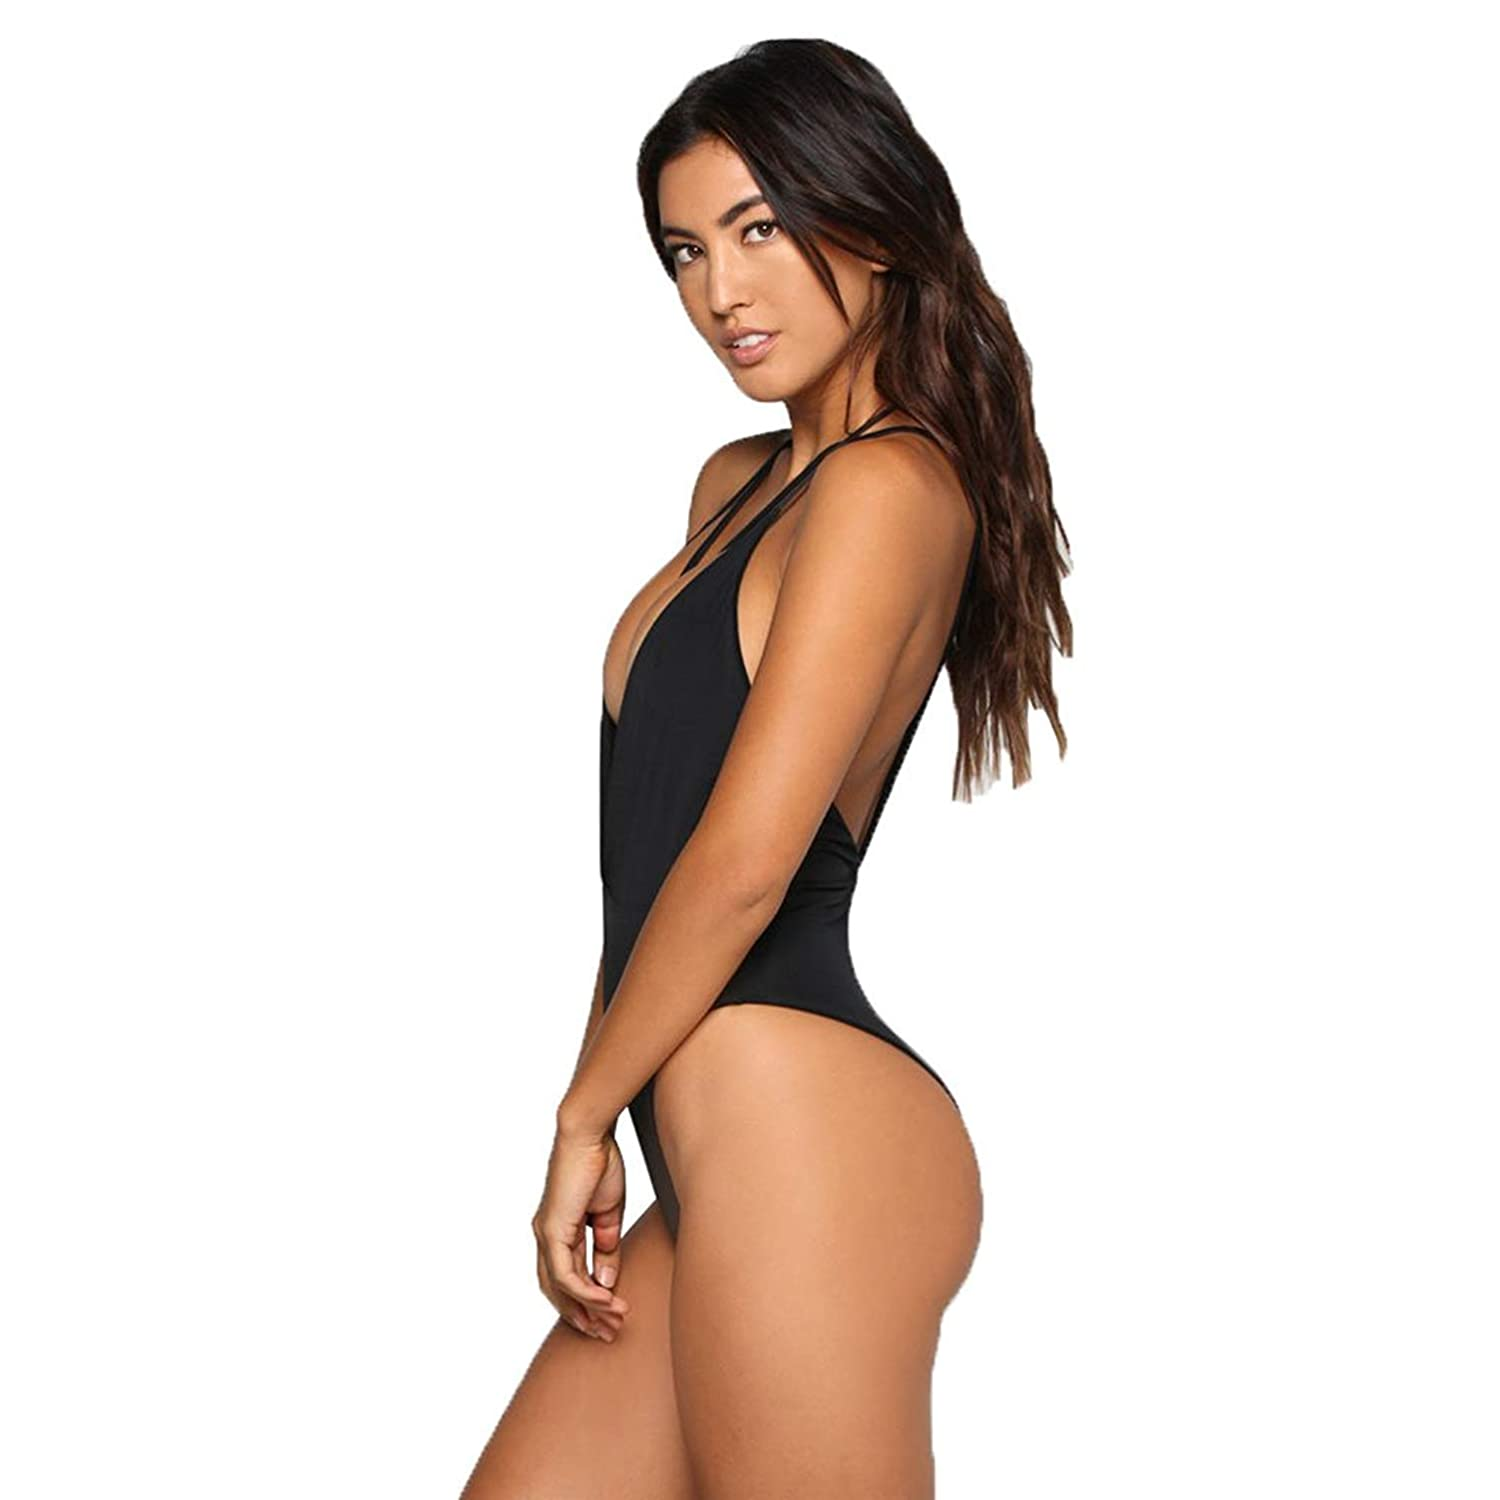 7a5aead8c4f0a Zero City Women Monokini Swimsuits One Piece Bathing Suit Deep V Backless  at Amazon Women's Clothing store: